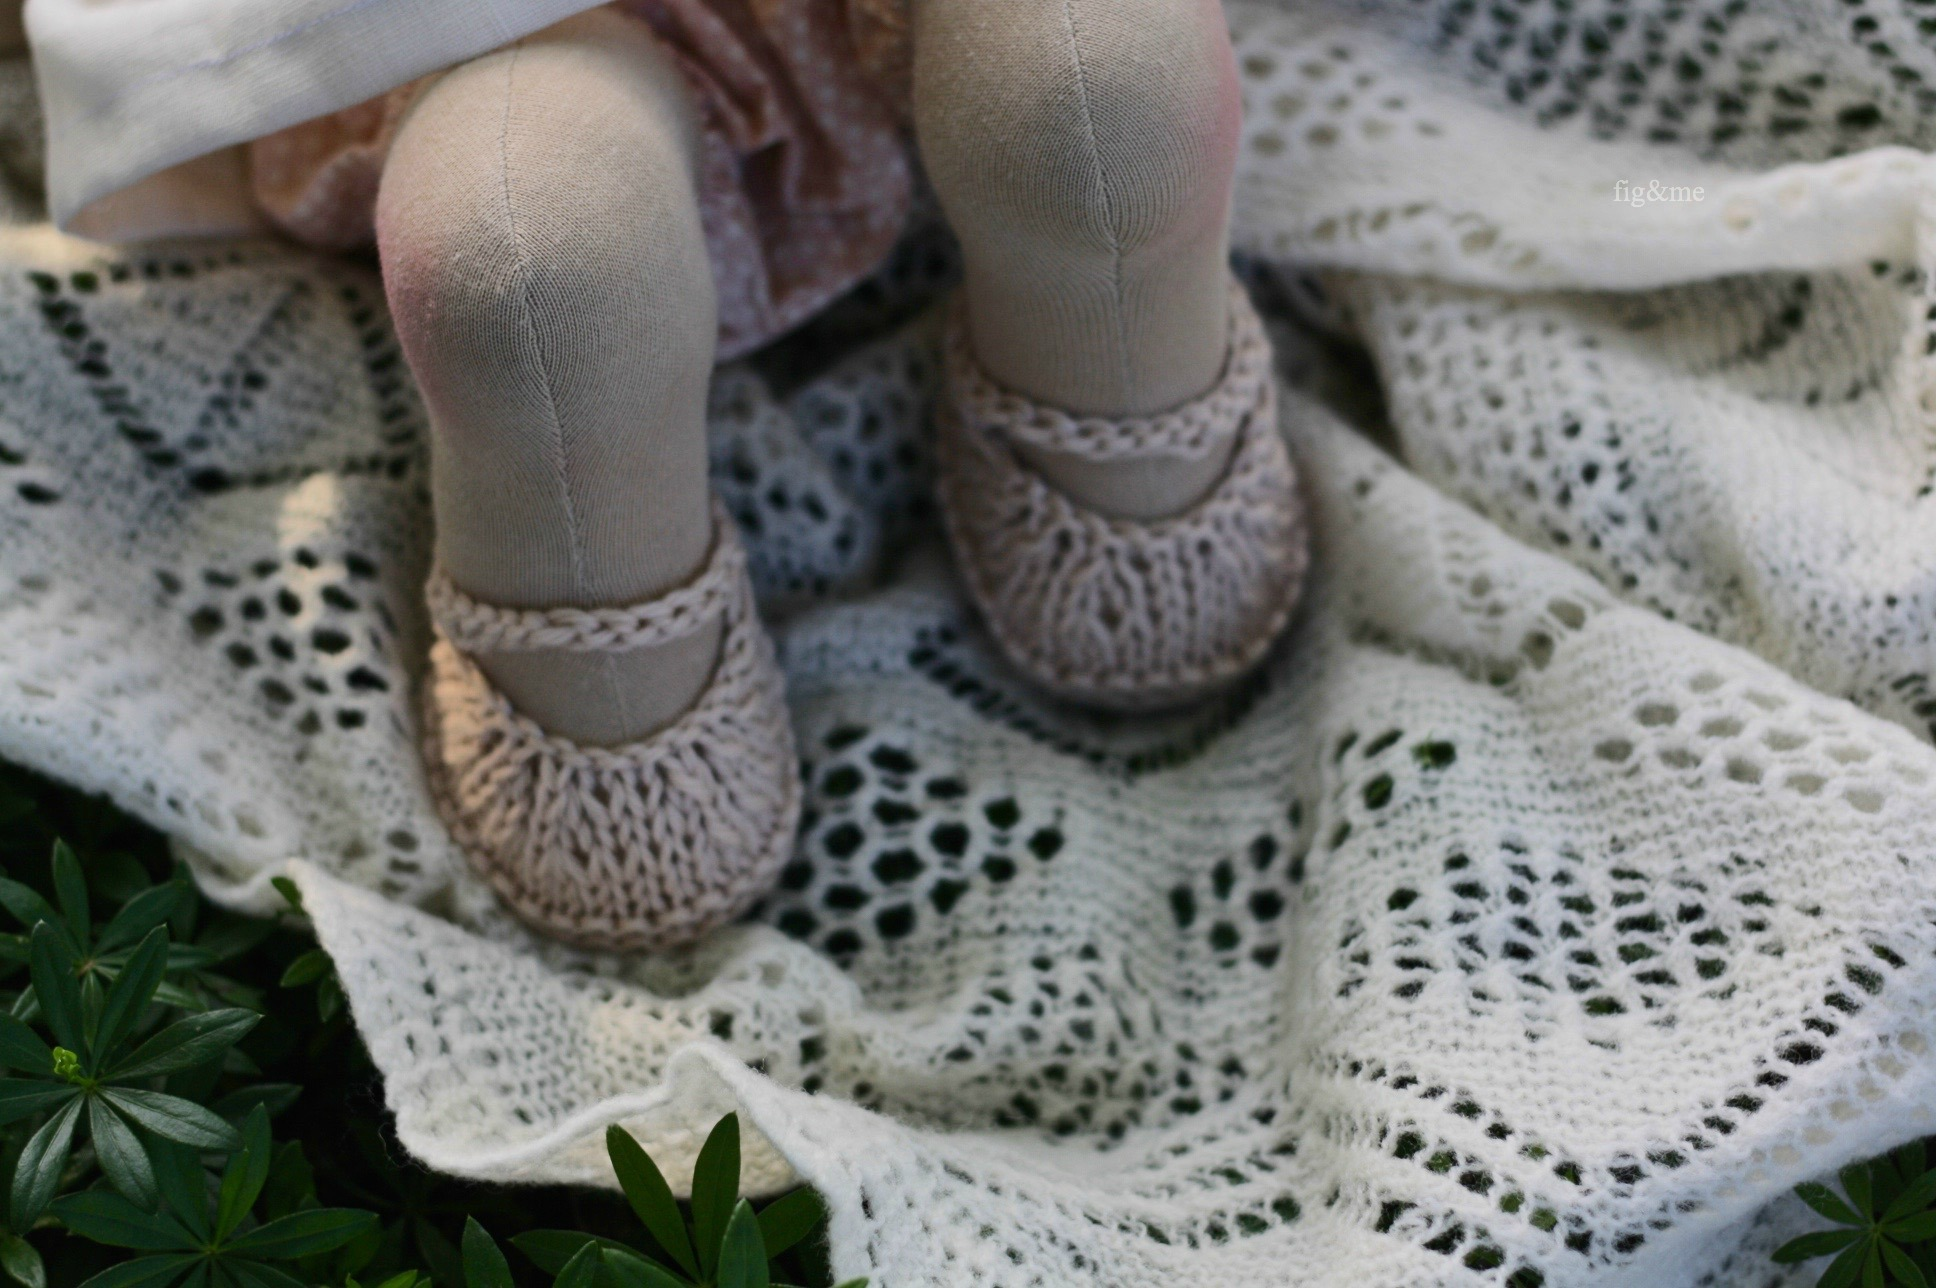 Elderflower's handknit maryjanes, natural doll by Fig&me